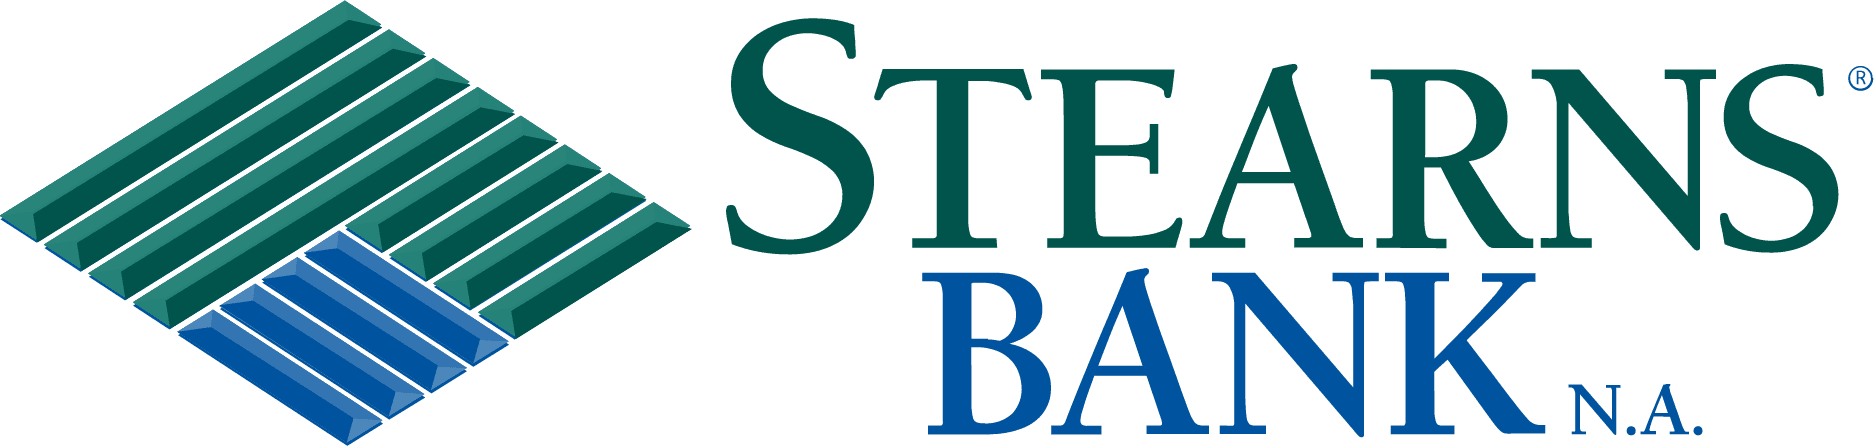 Financing available through Sterns Bank